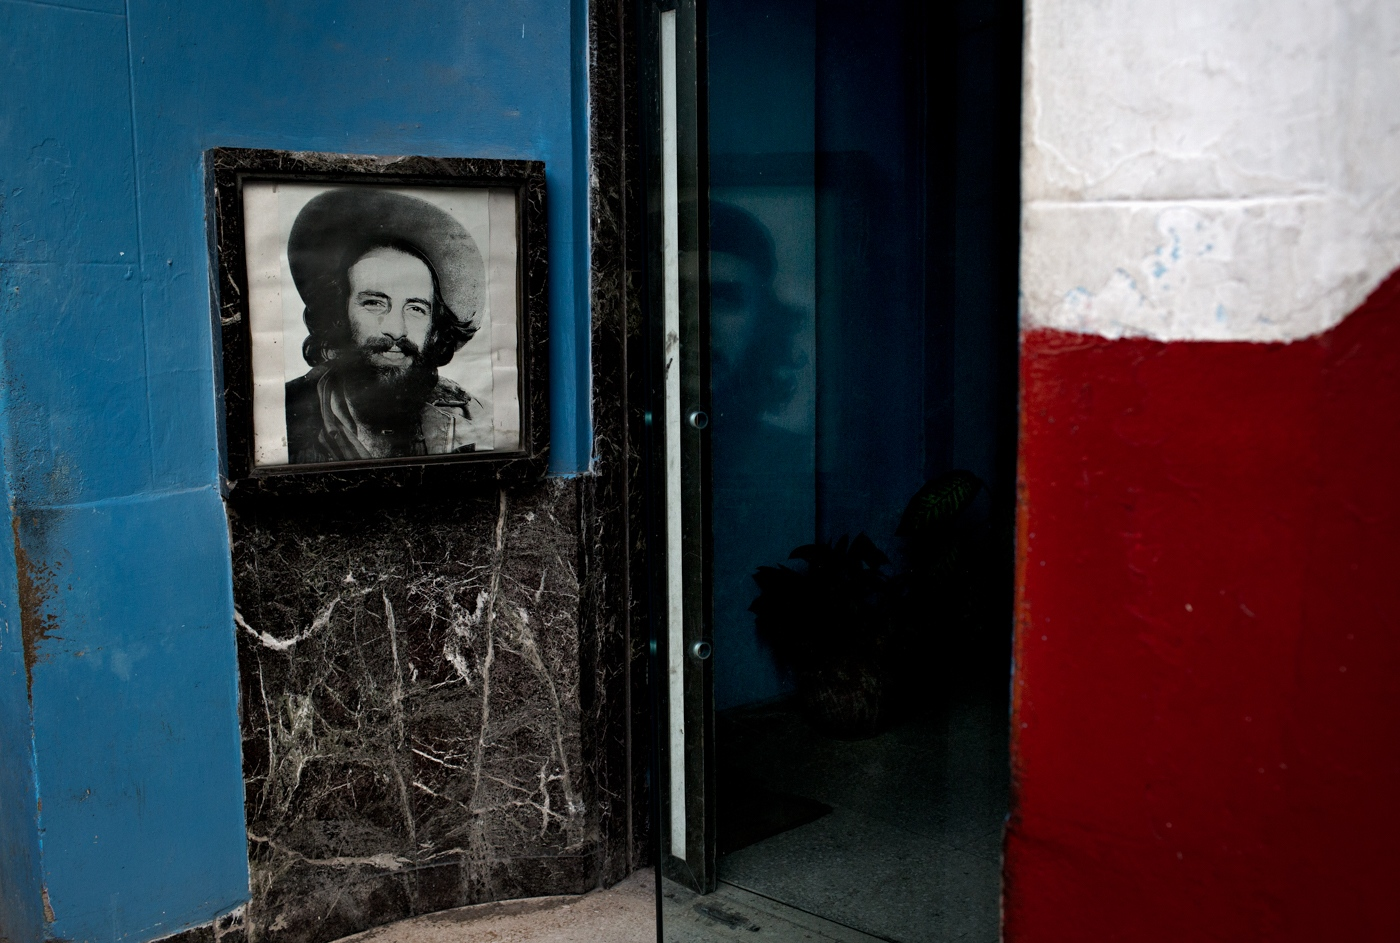 Pictures and representation of Che Guevara and Camilo Cienfuegos (sometimes mistaken for Fidel Castro) are omnipresent throughout Havana.